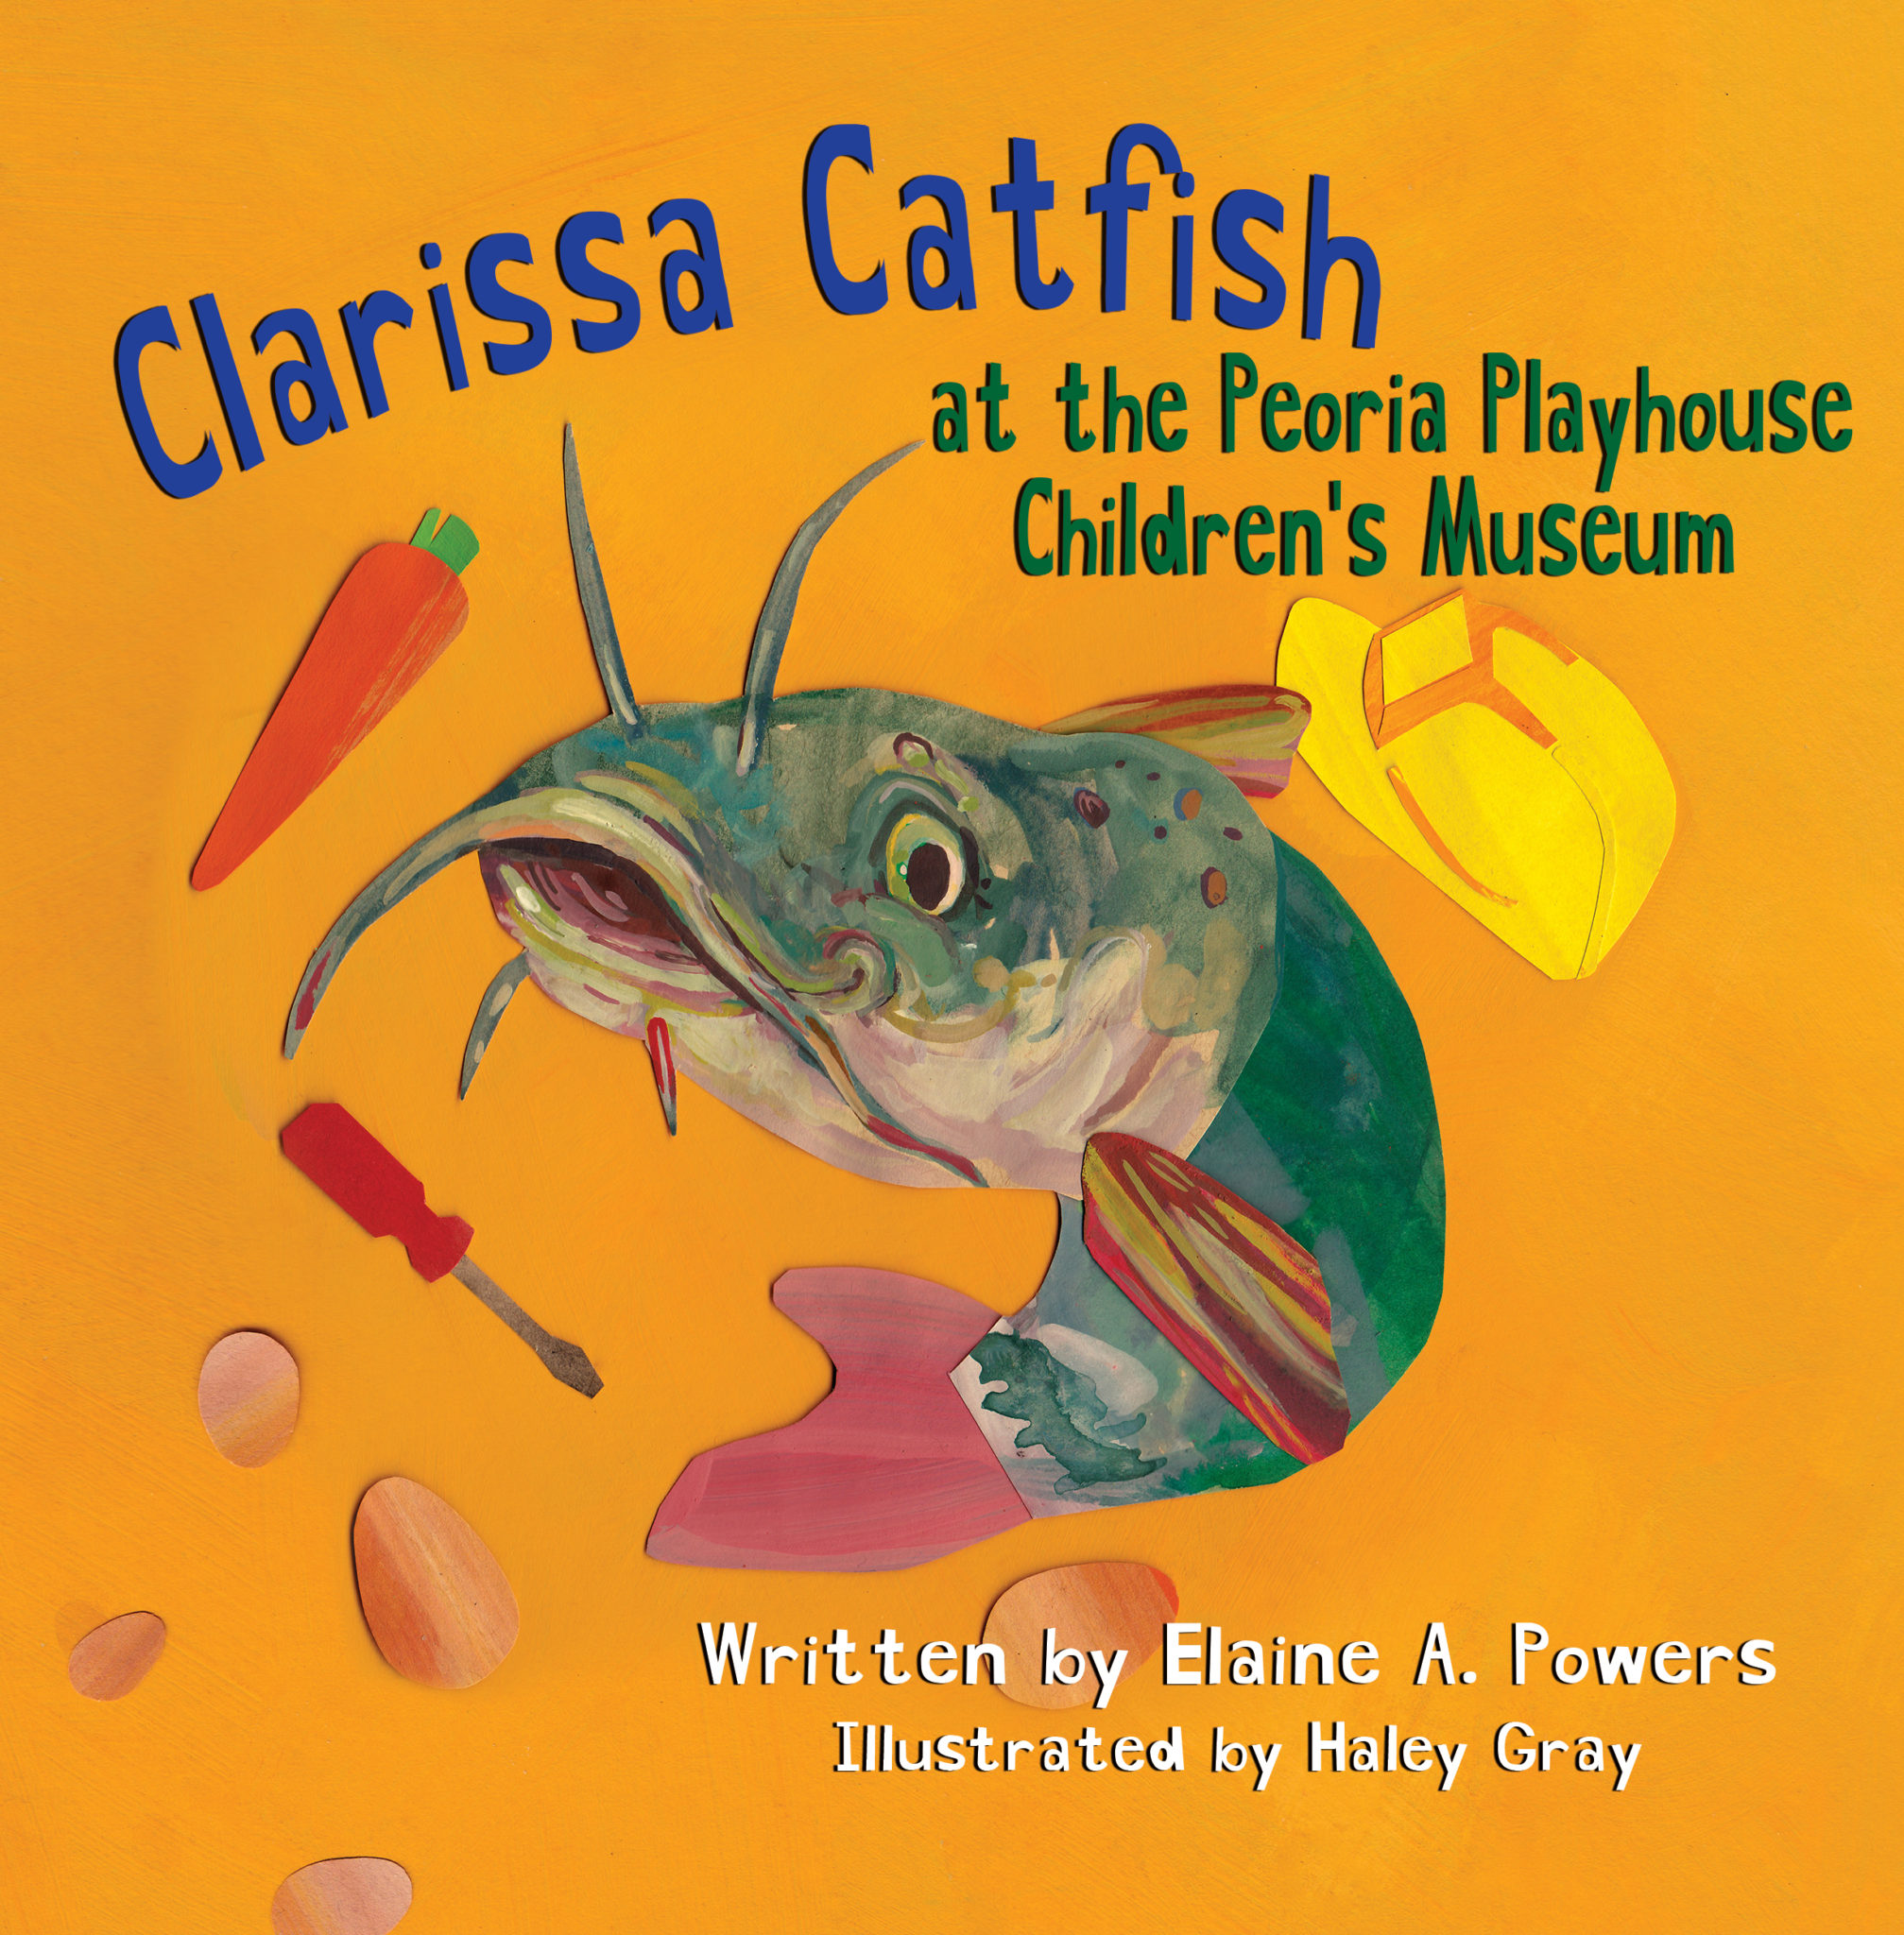 A golden orange book cover with a green catfish on the cover